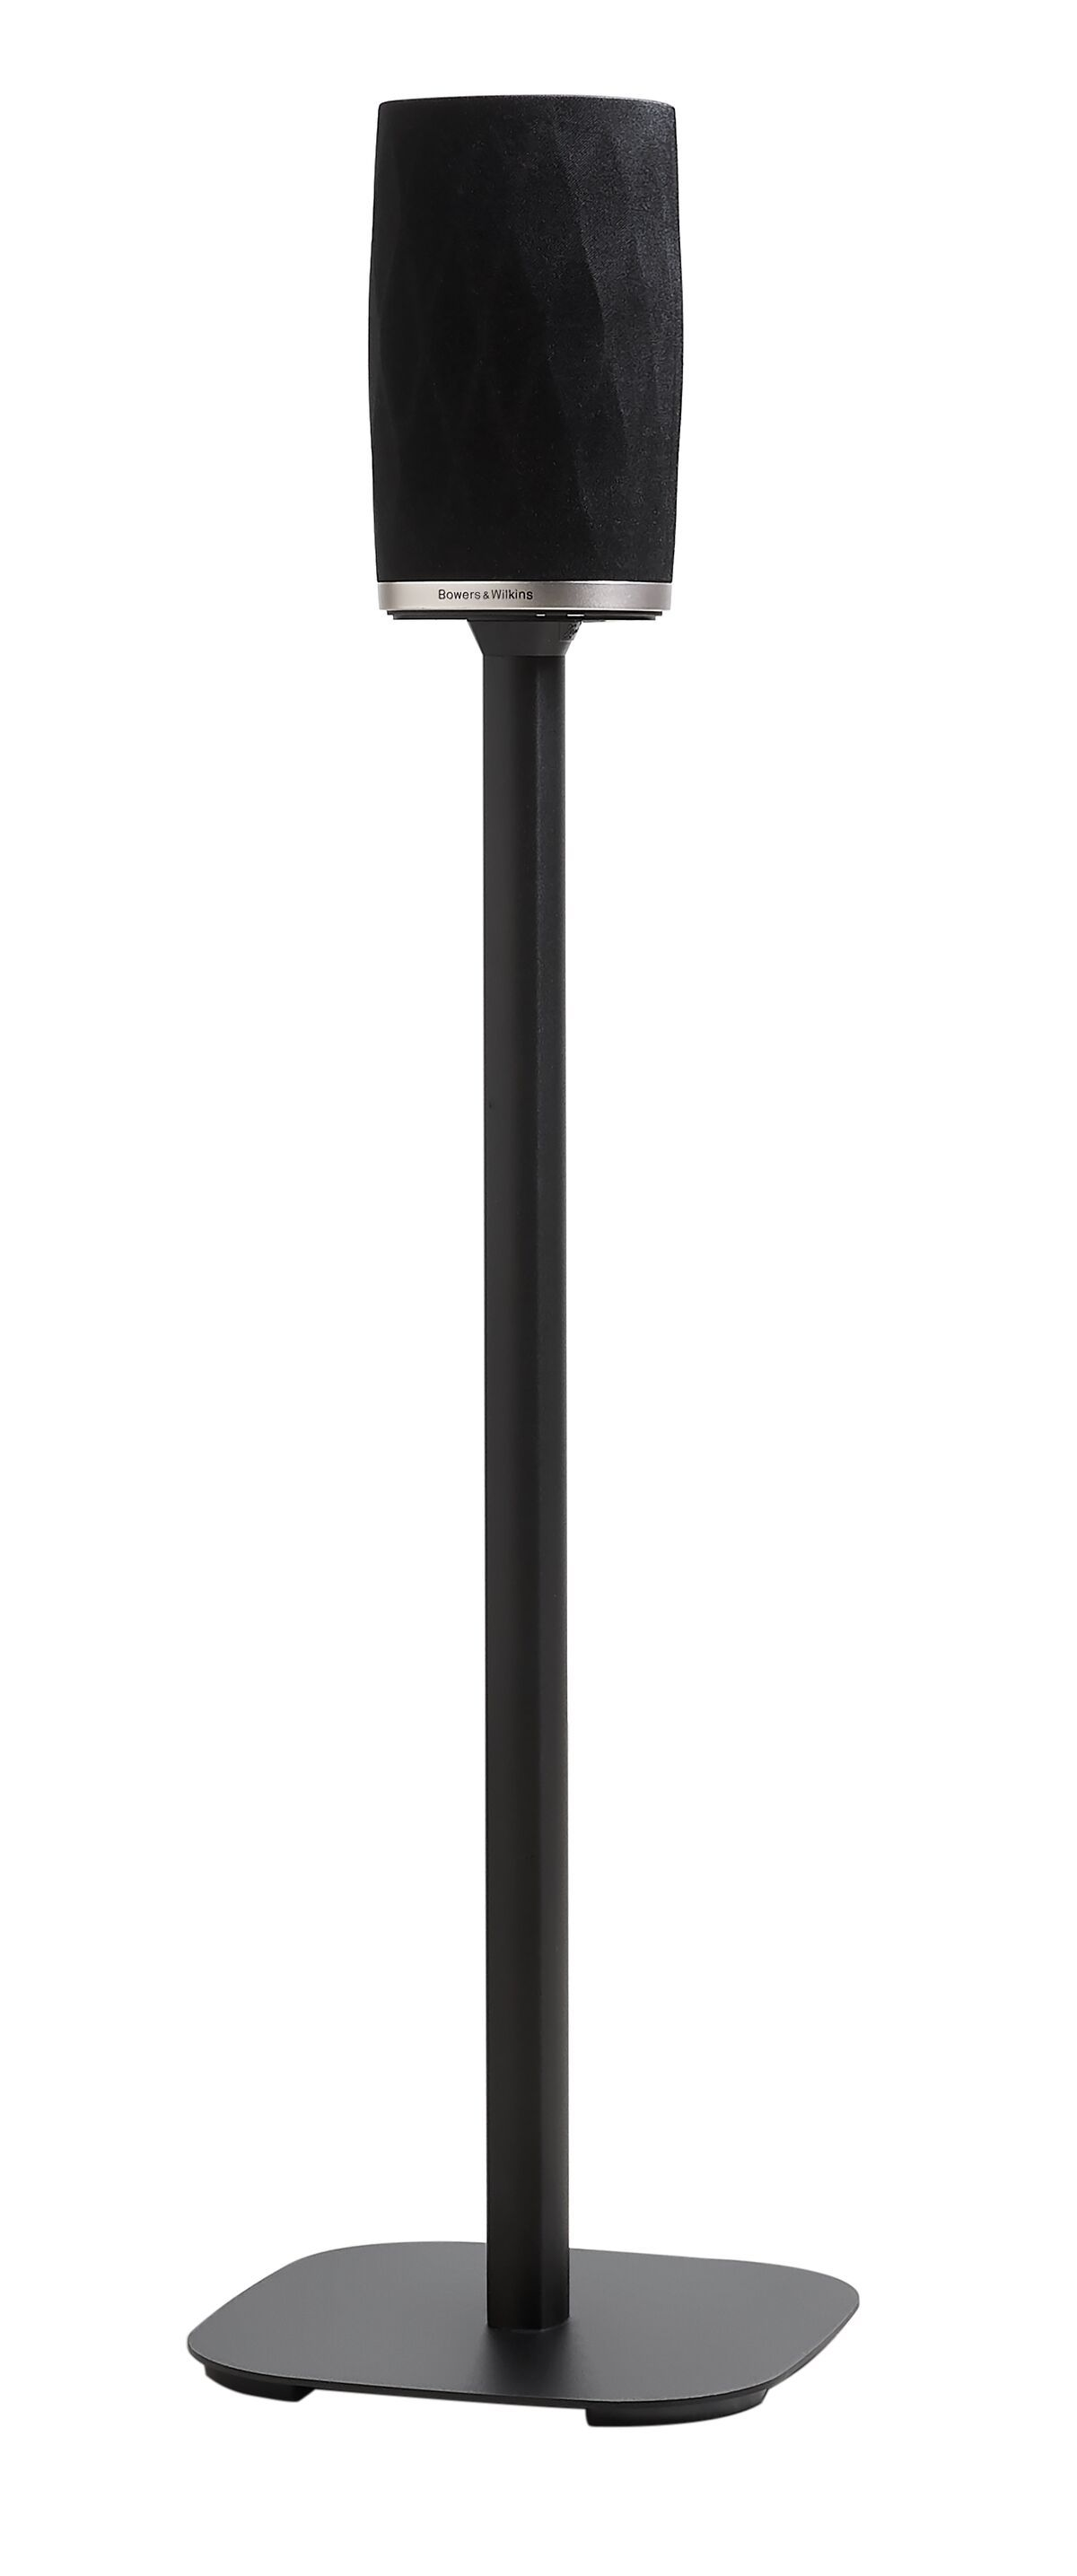 Vogel's SOUND 6301 Stand per casse Bowers & Wilkins Formation Flex - Application